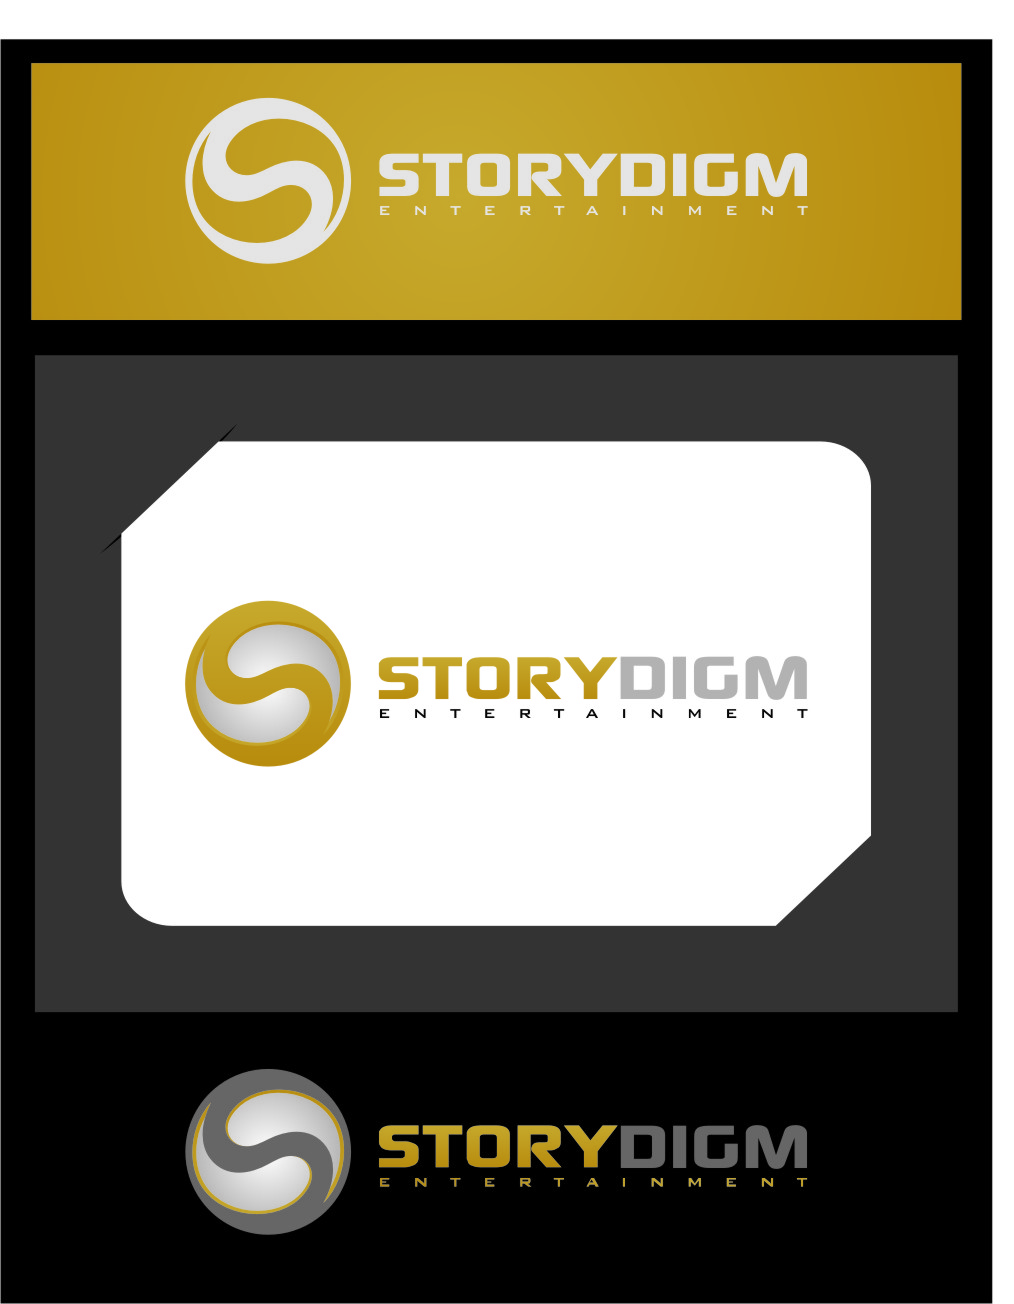 Logo Design by Ngepet_art - Entry No. 89 in the Logo Design Contest Inspiring Logo Design for Storydigm Entertainment.